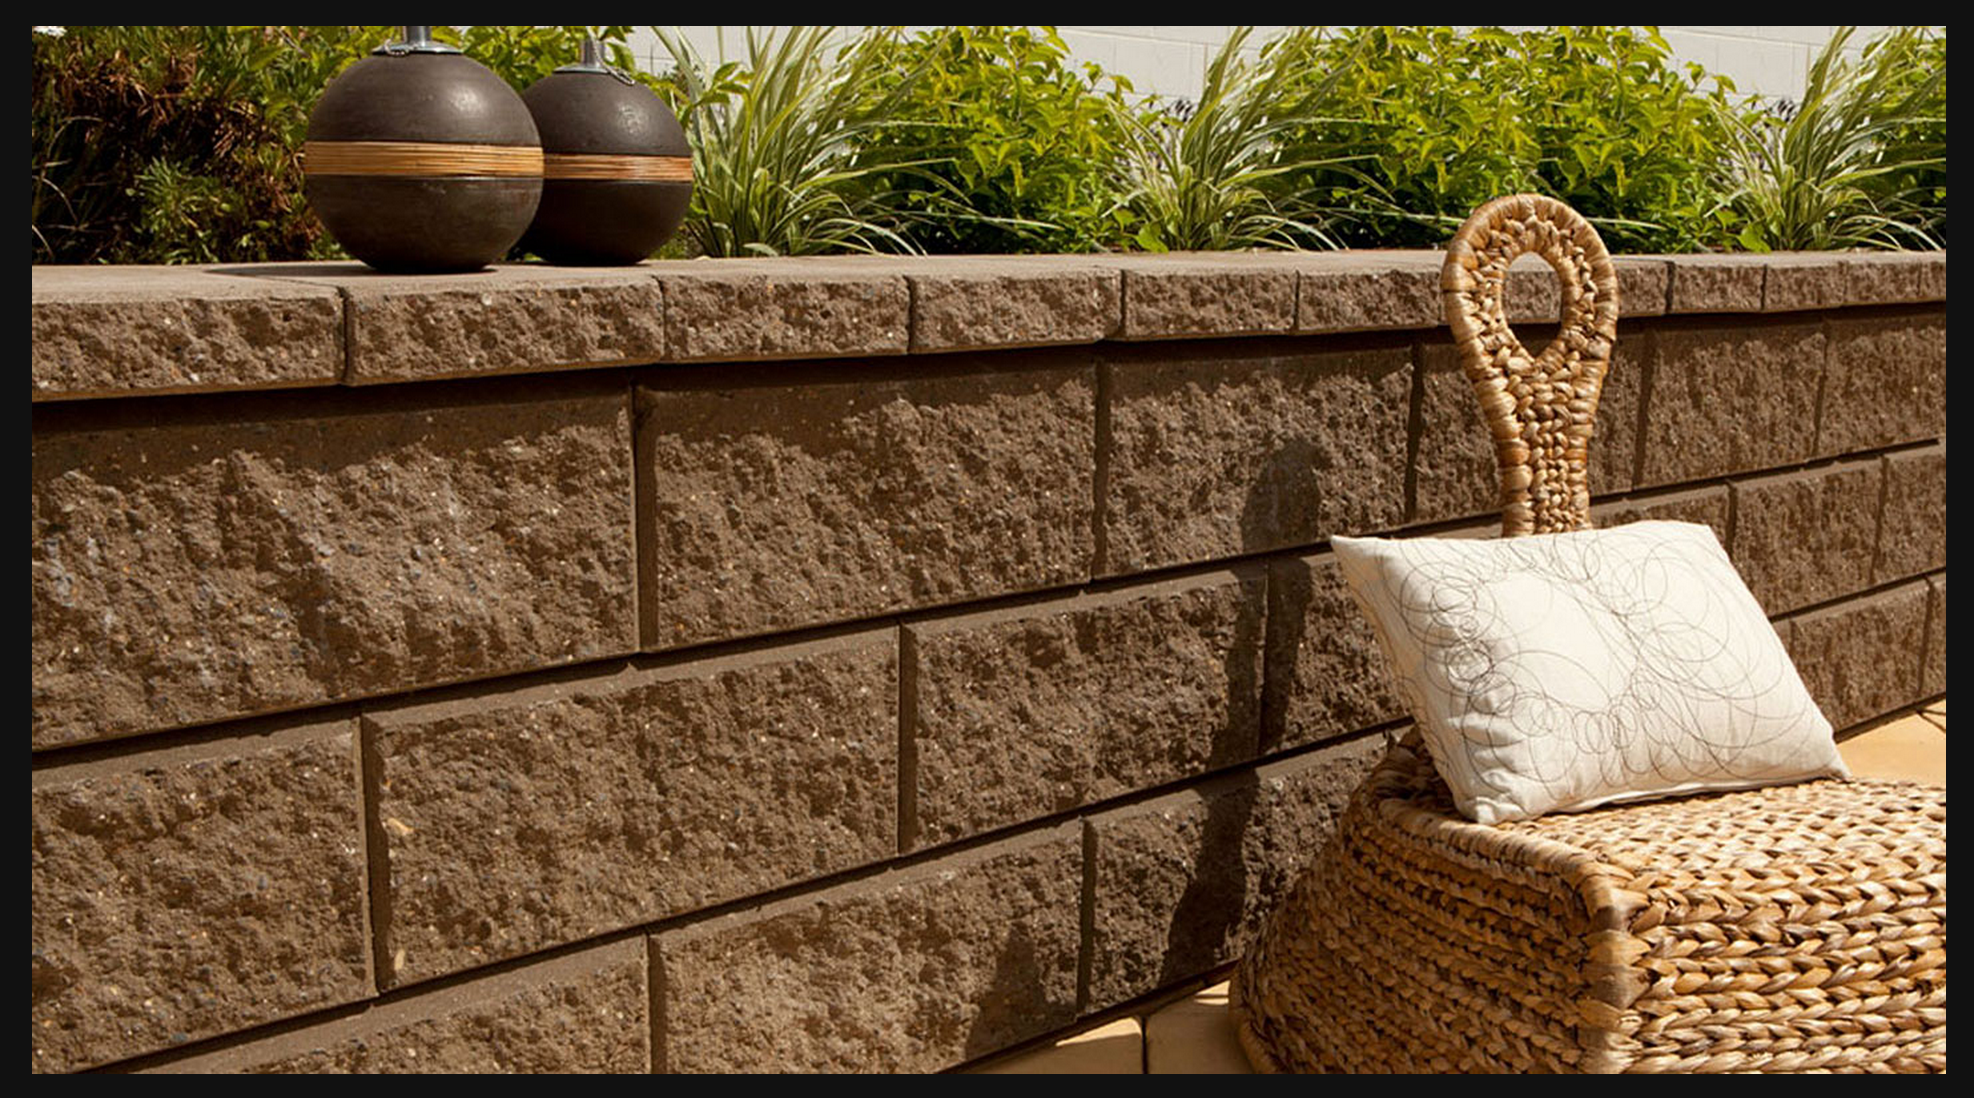 Adbri Ab Aussie Vertical This Vertical Retaining Wall System With Traditional Concrete Segmental Re Retaining Wall Garden Retaining Wall Wall Systems